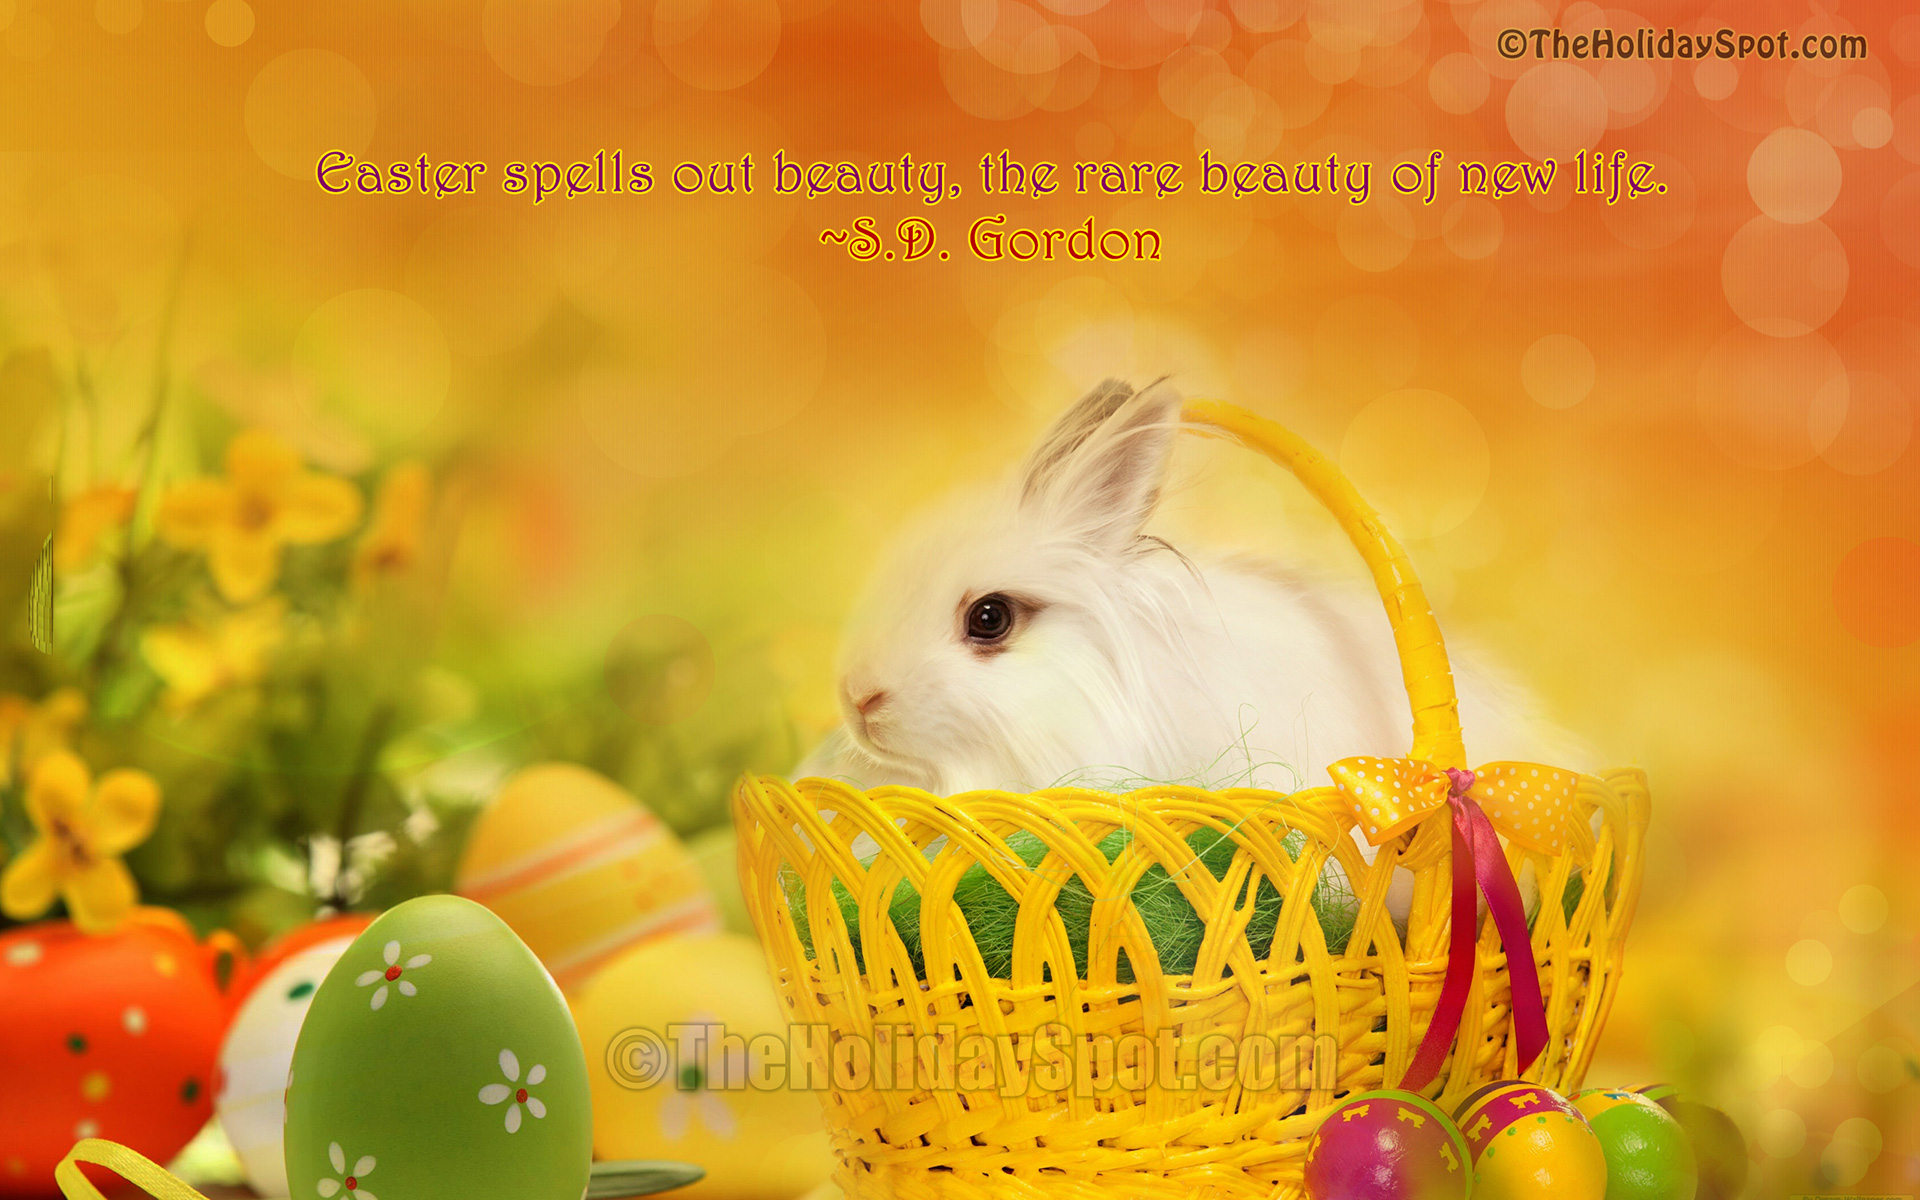 Easter wallpapers from TheHolidaySpot 1920x1200